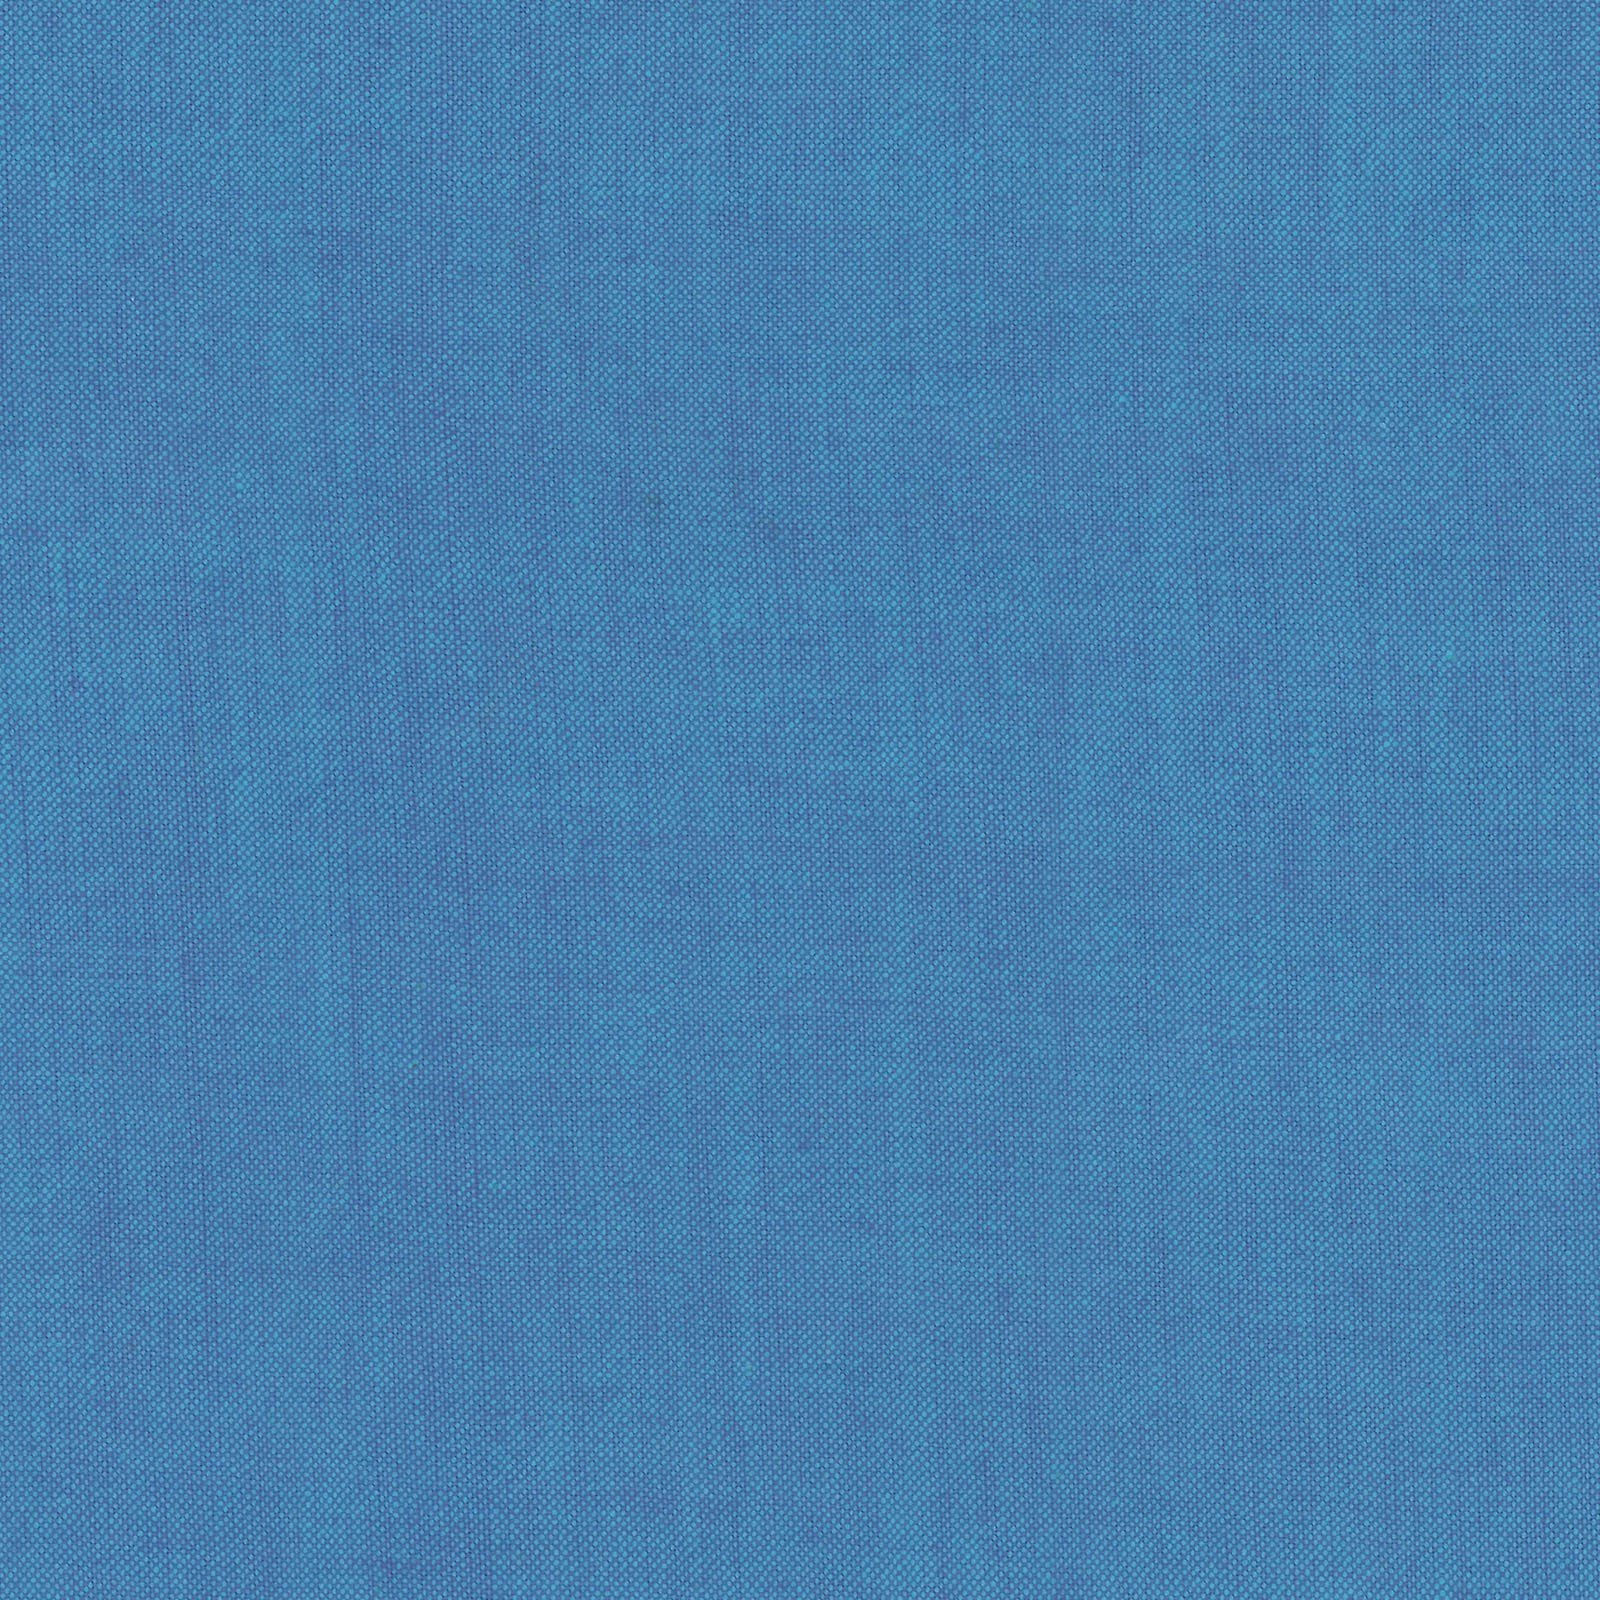 Peppered Cottons - Parrish Blue